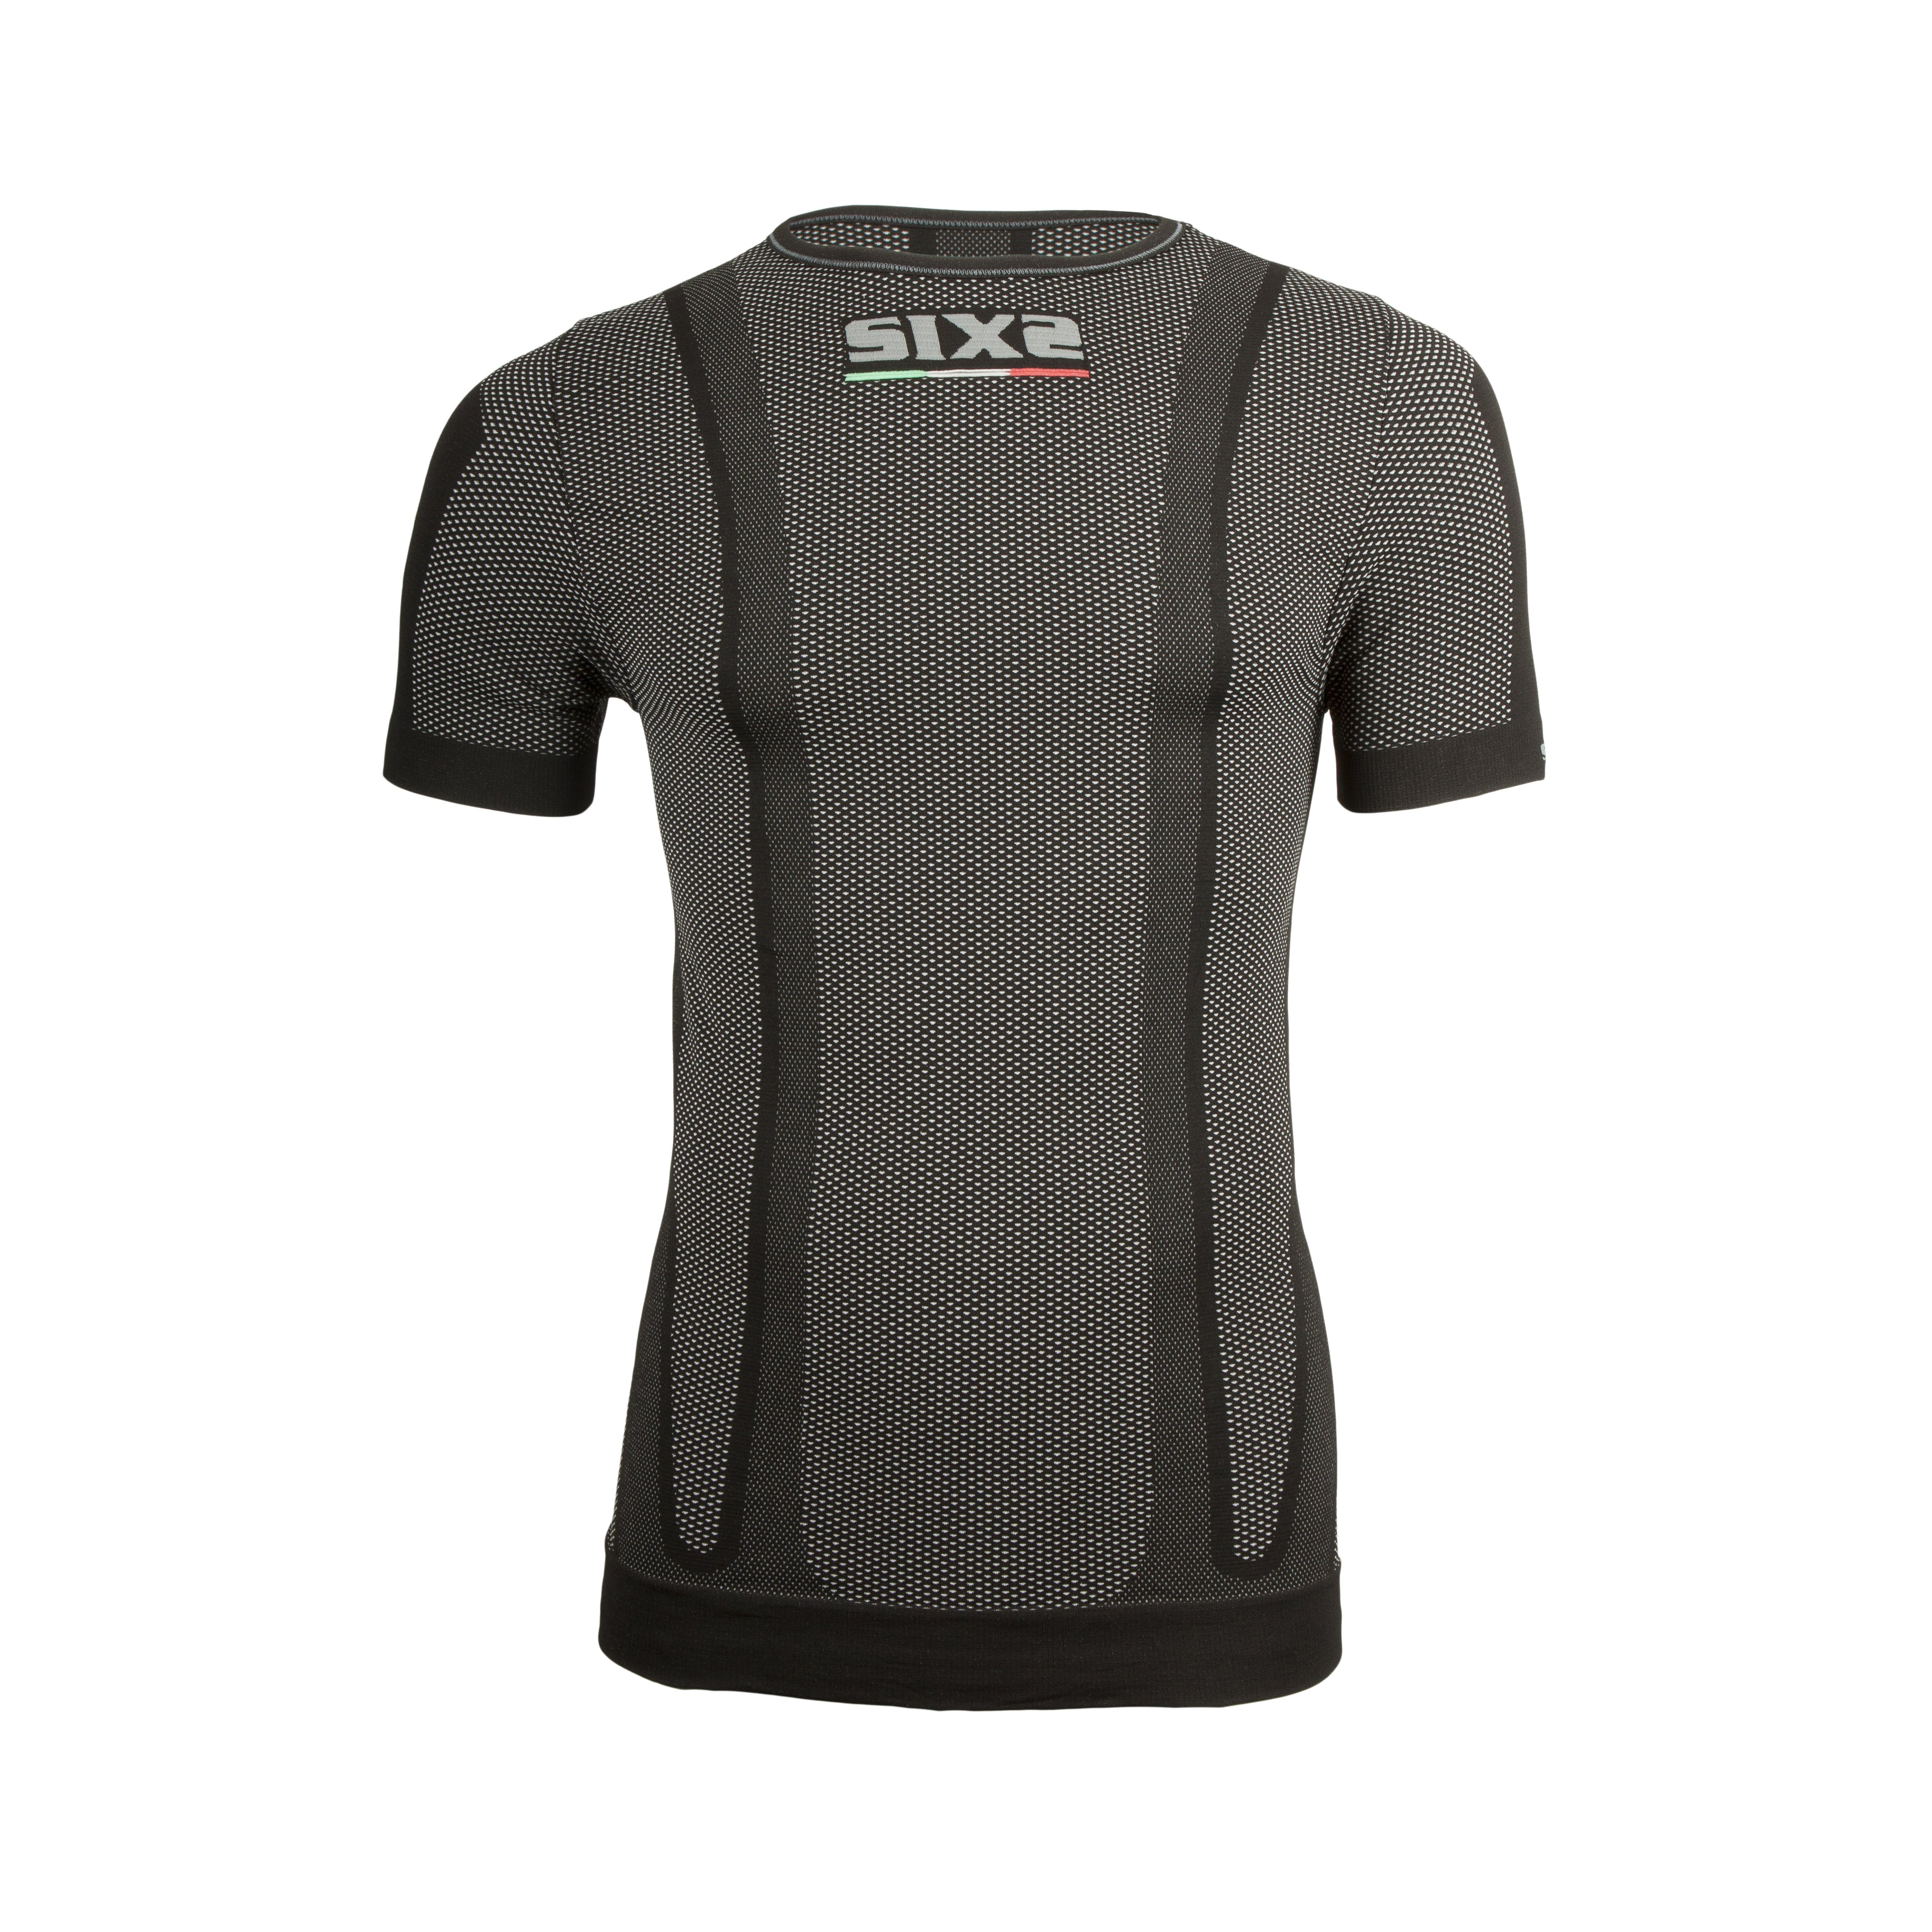 SIXS Classic Carbon Short Sleeves